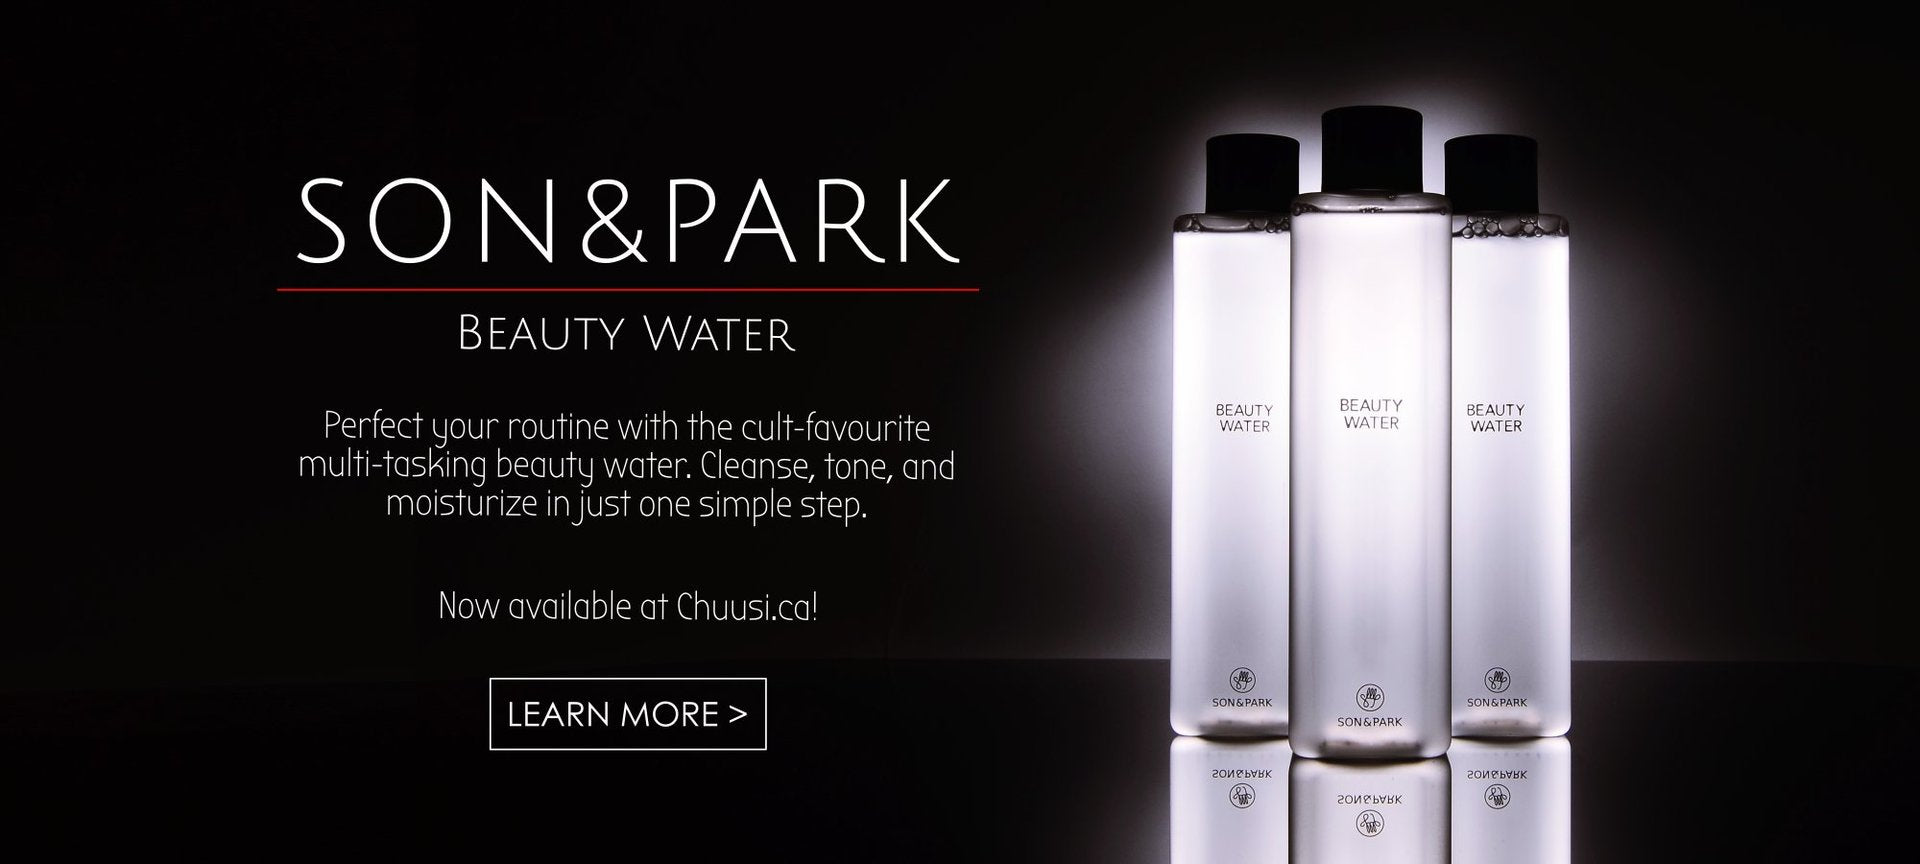 Son & Park | Shop Korean skincare cosmetics in Canada & USA at Chuusi.ca